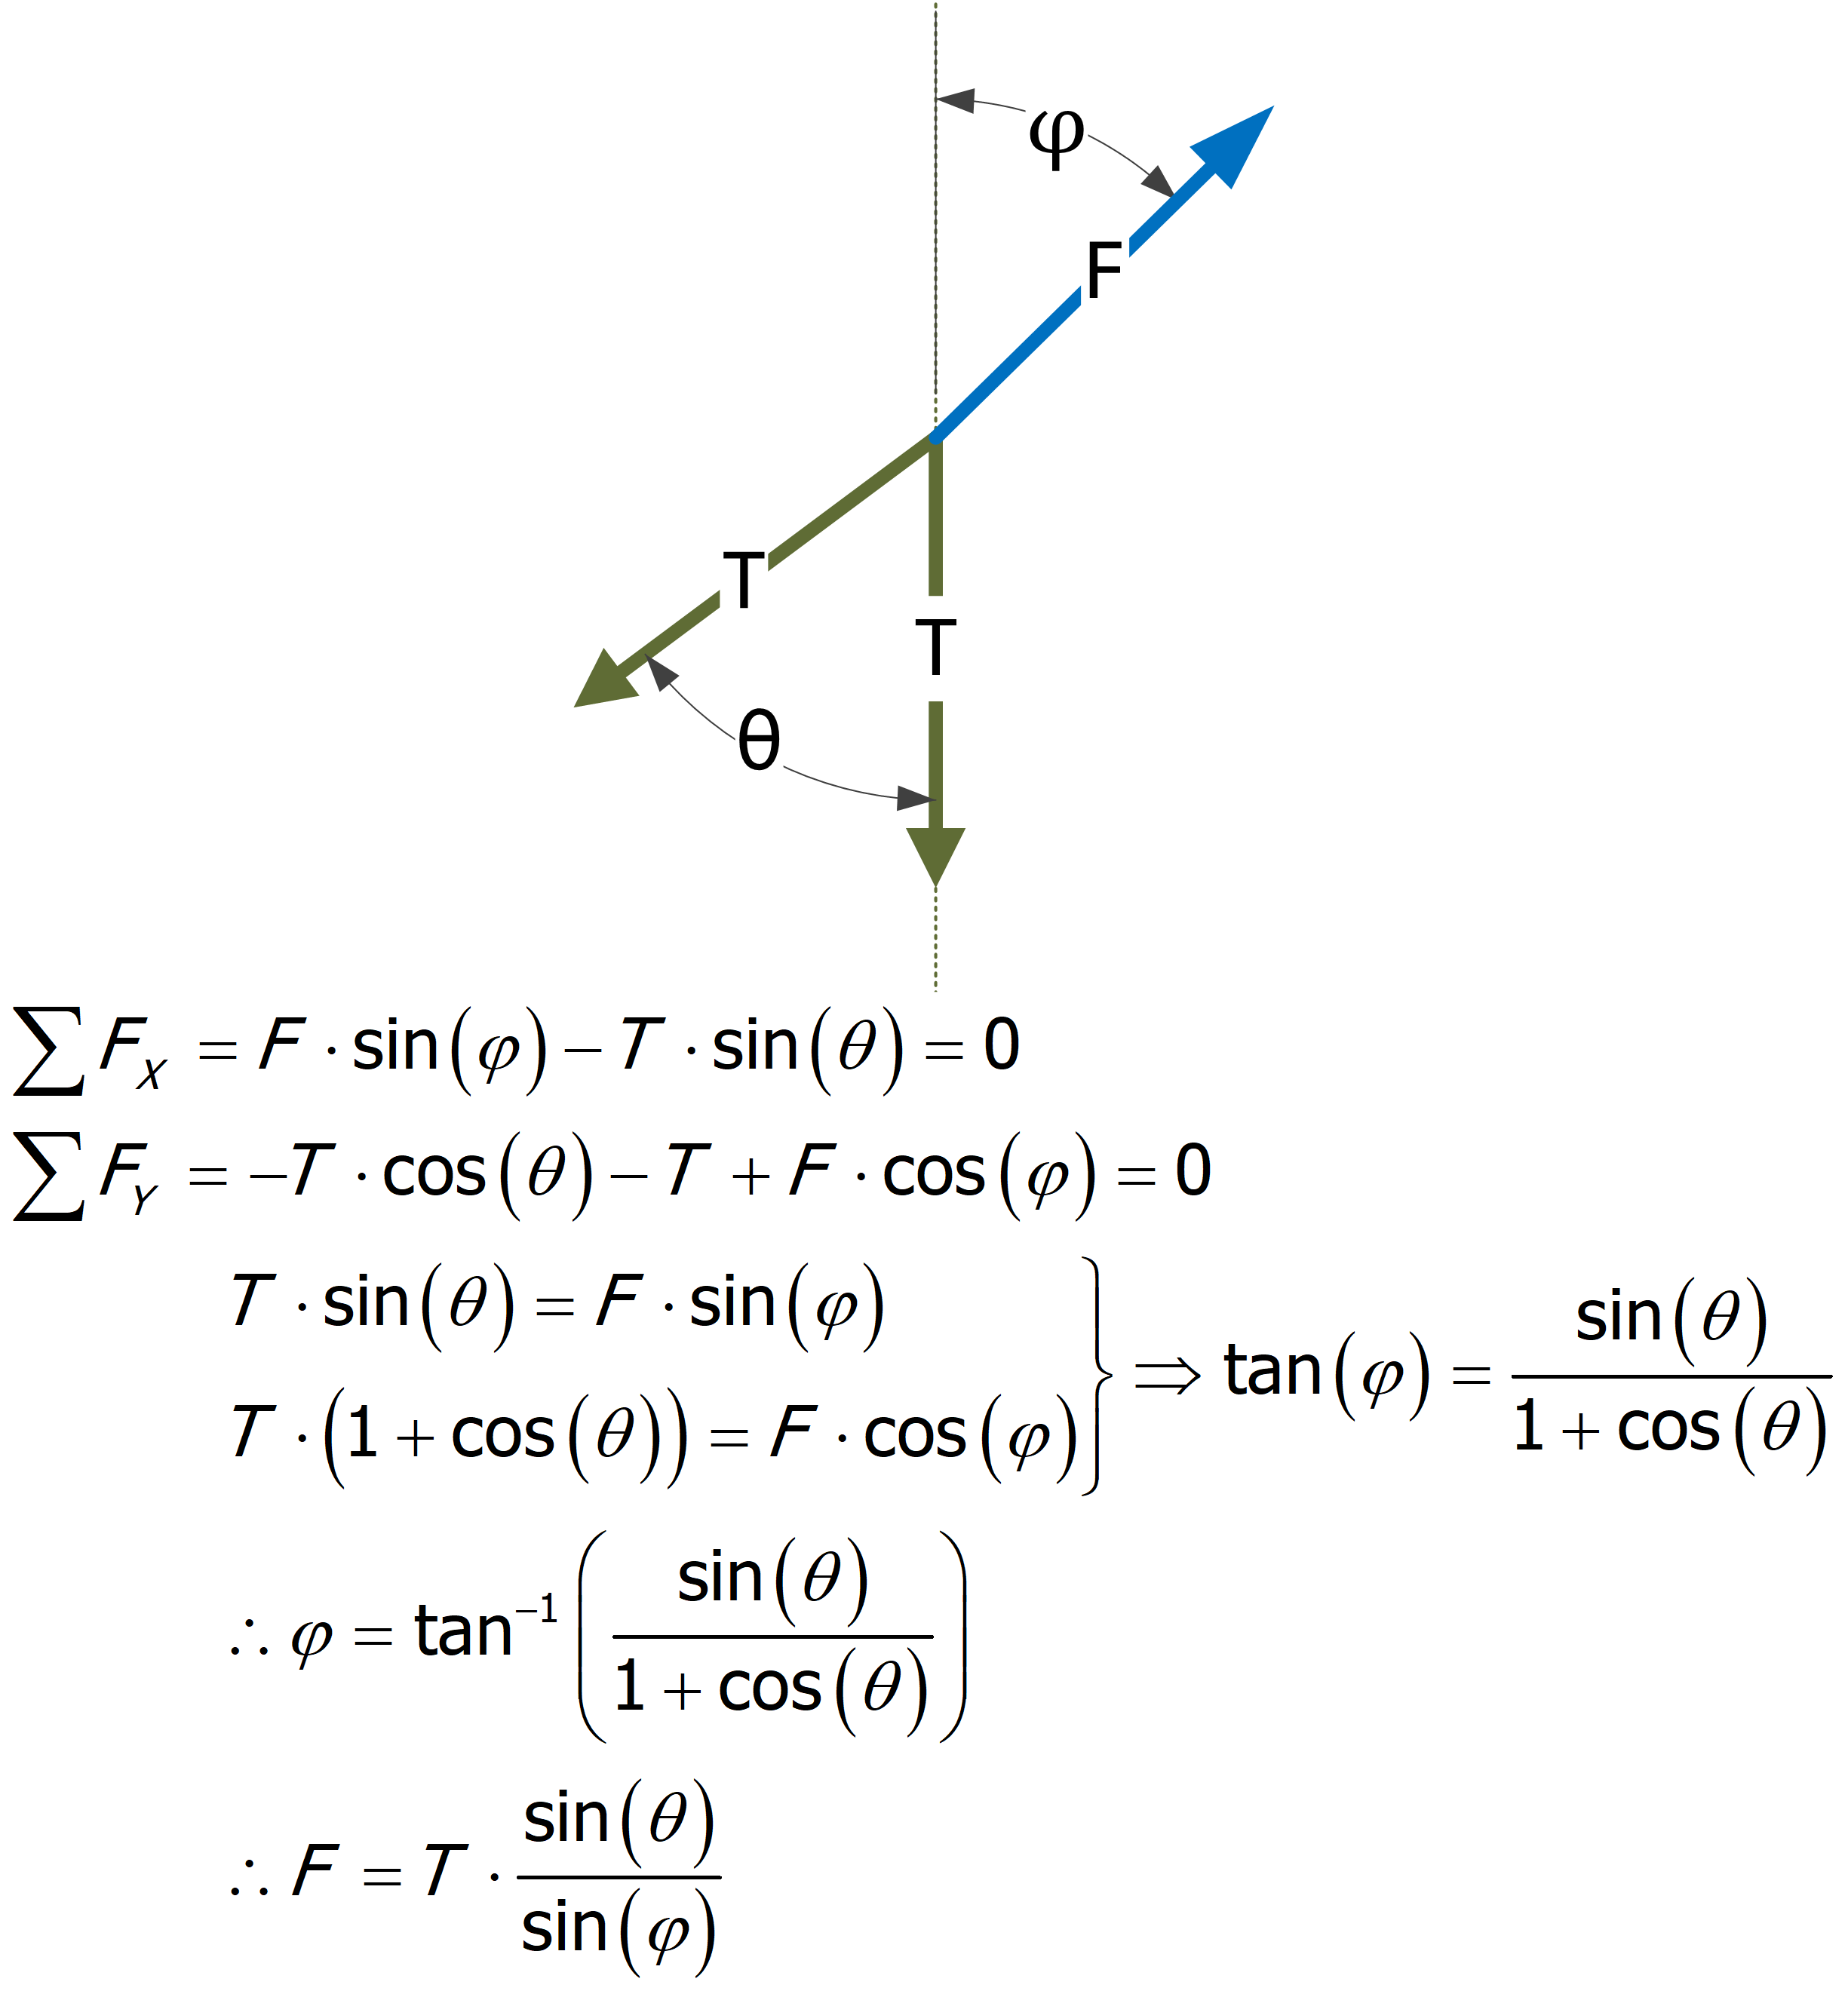 Figure 2: Free Body Diagram and Derivation.